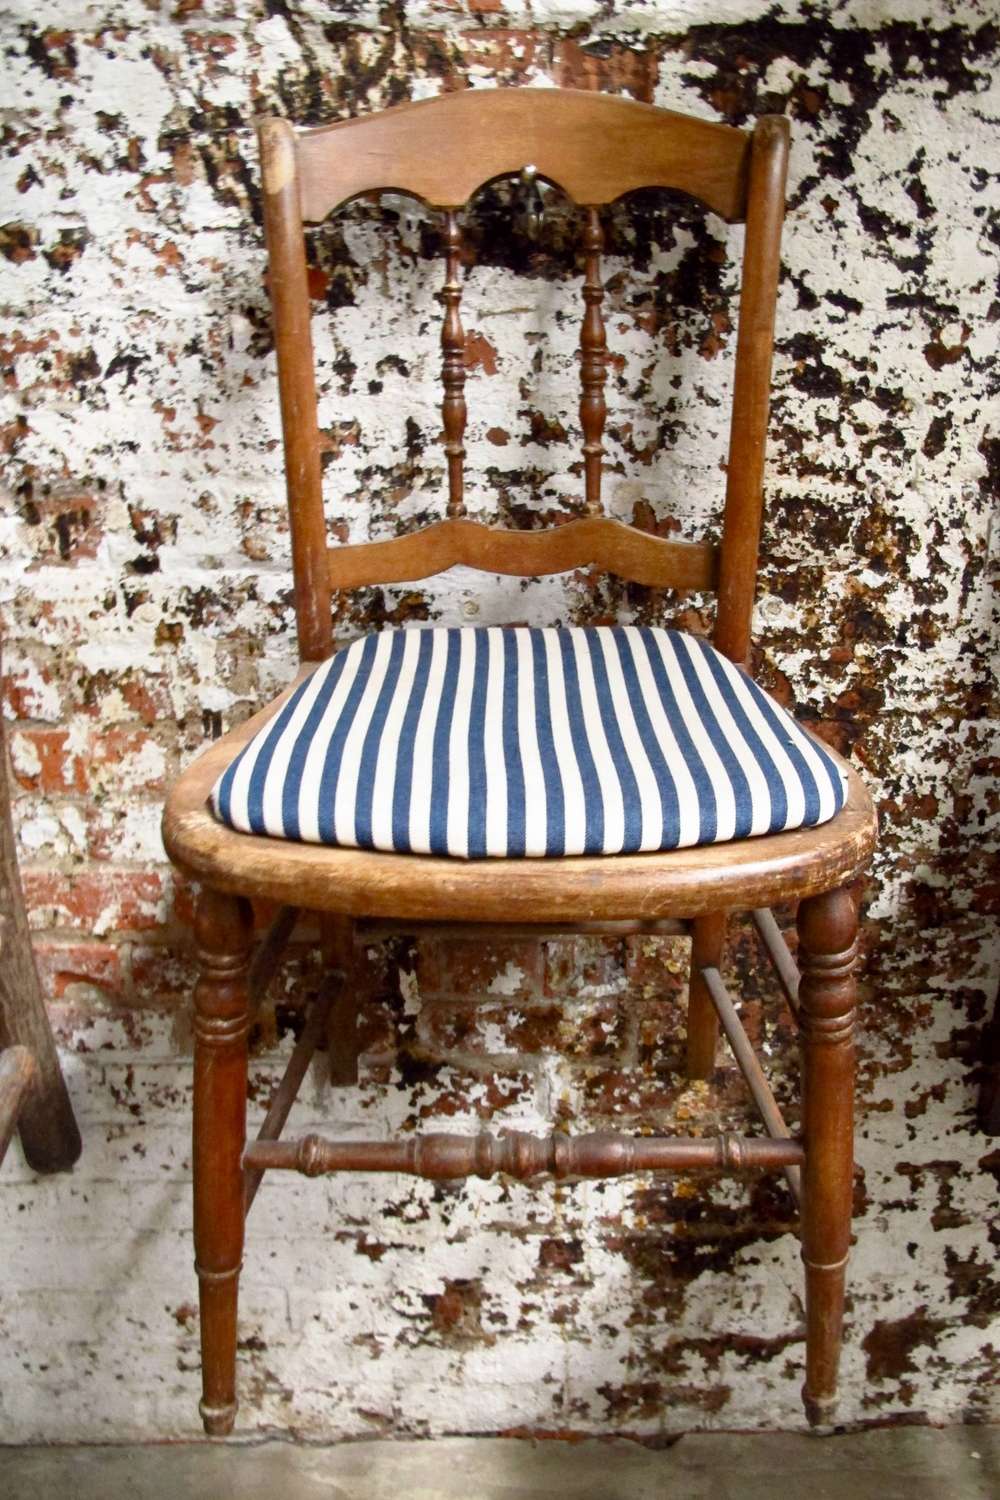 Blue Stripe Wood 'Cottage' Chair $40